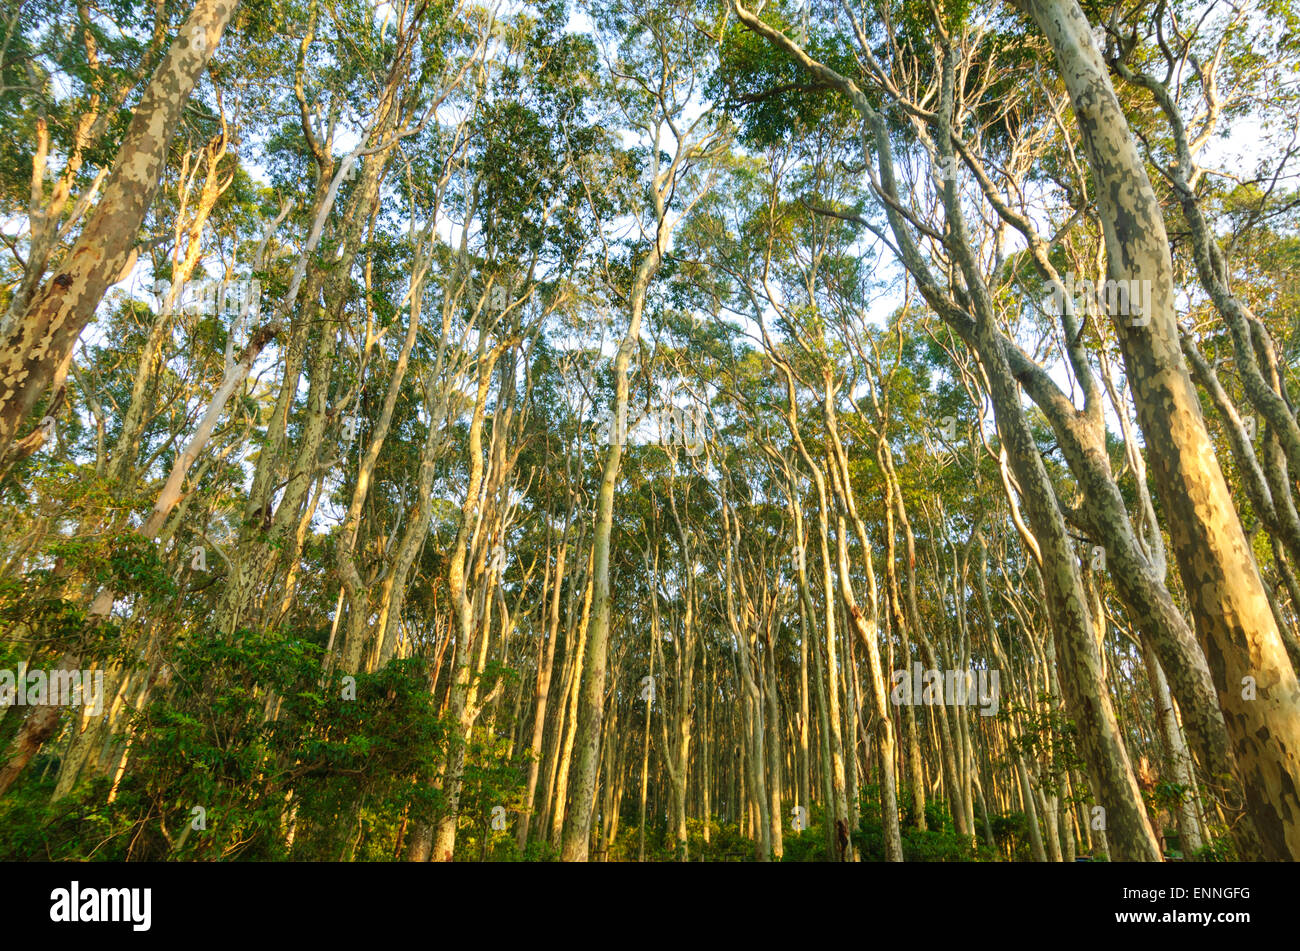 spotted-gum-trees-corymbia-maculata-euro